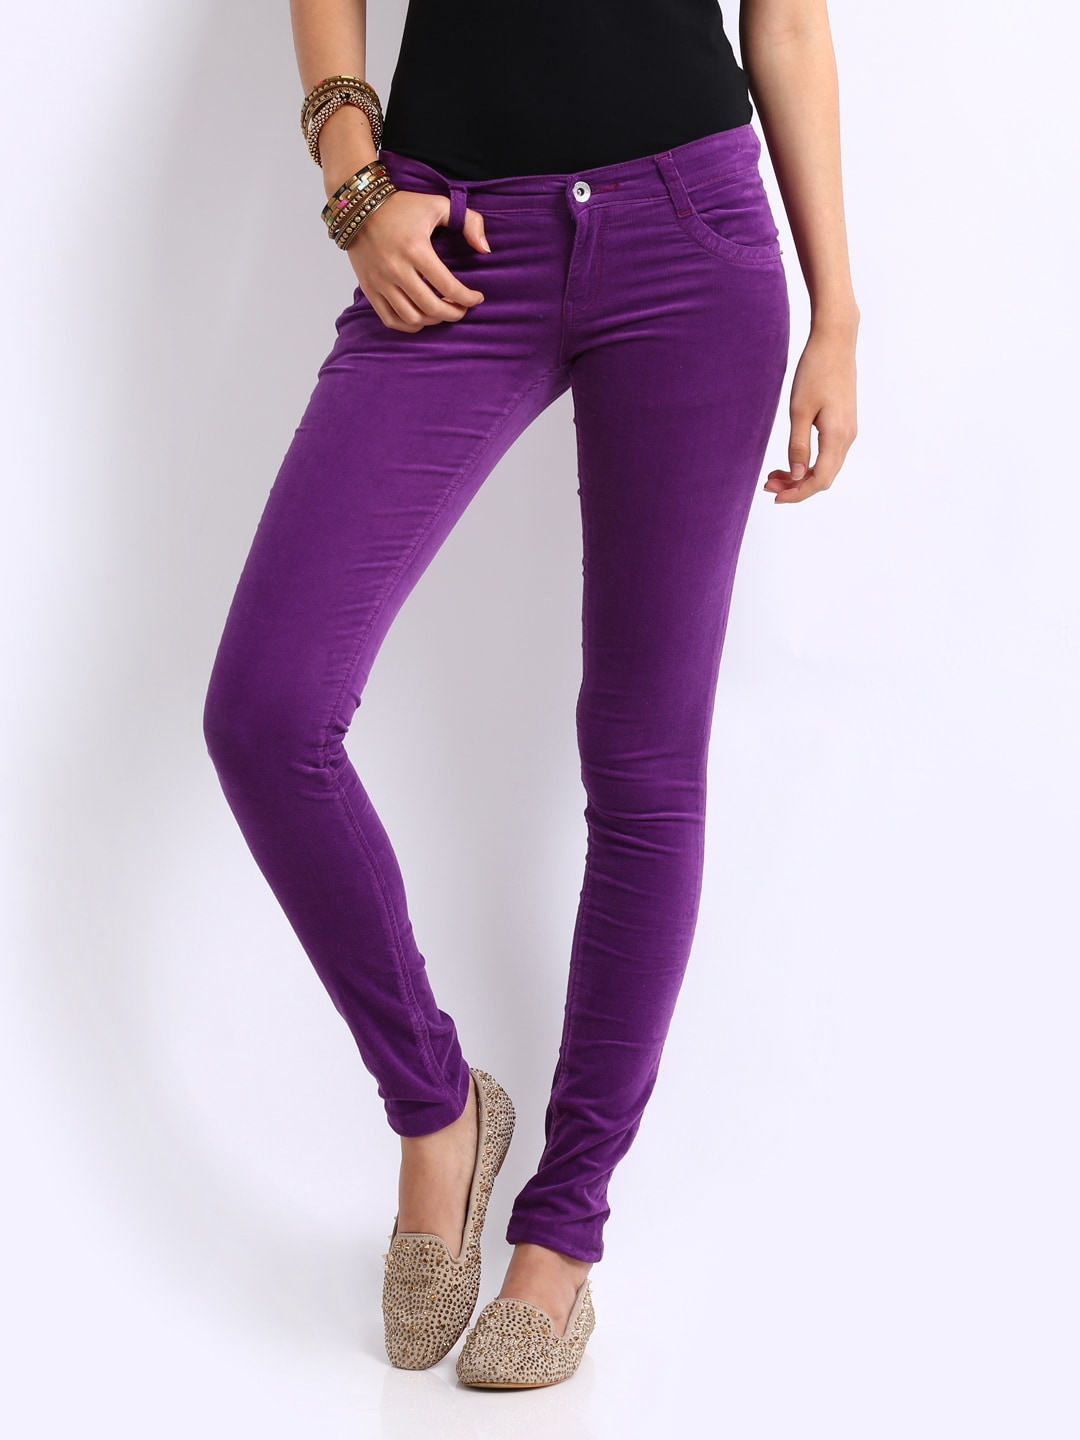 Buy Kraus Jeans Women Purple Jeggings (violet) 1448714 for women